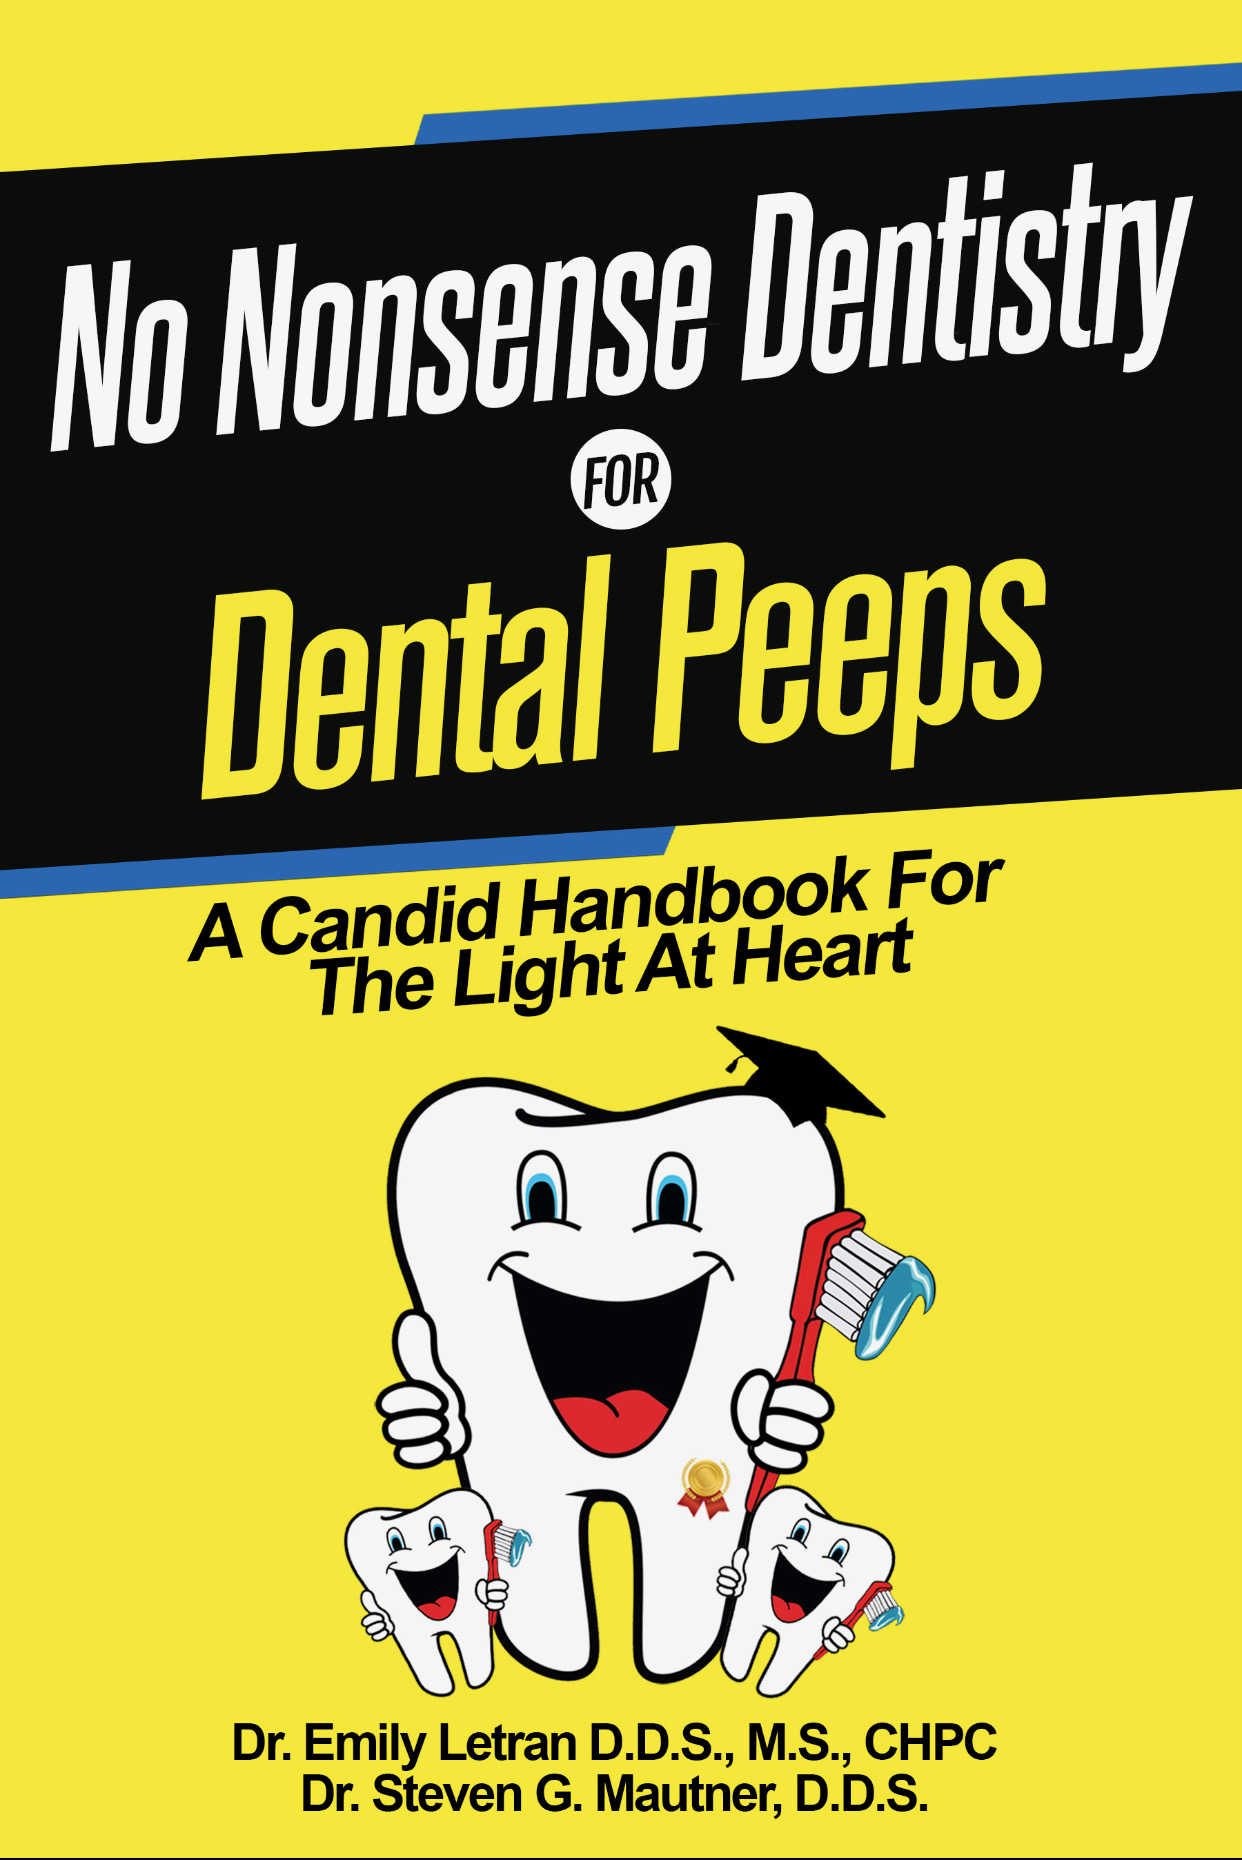 No B.S. Dentistry for Dental Peeps - A Candid Handbook for the Light at Heart